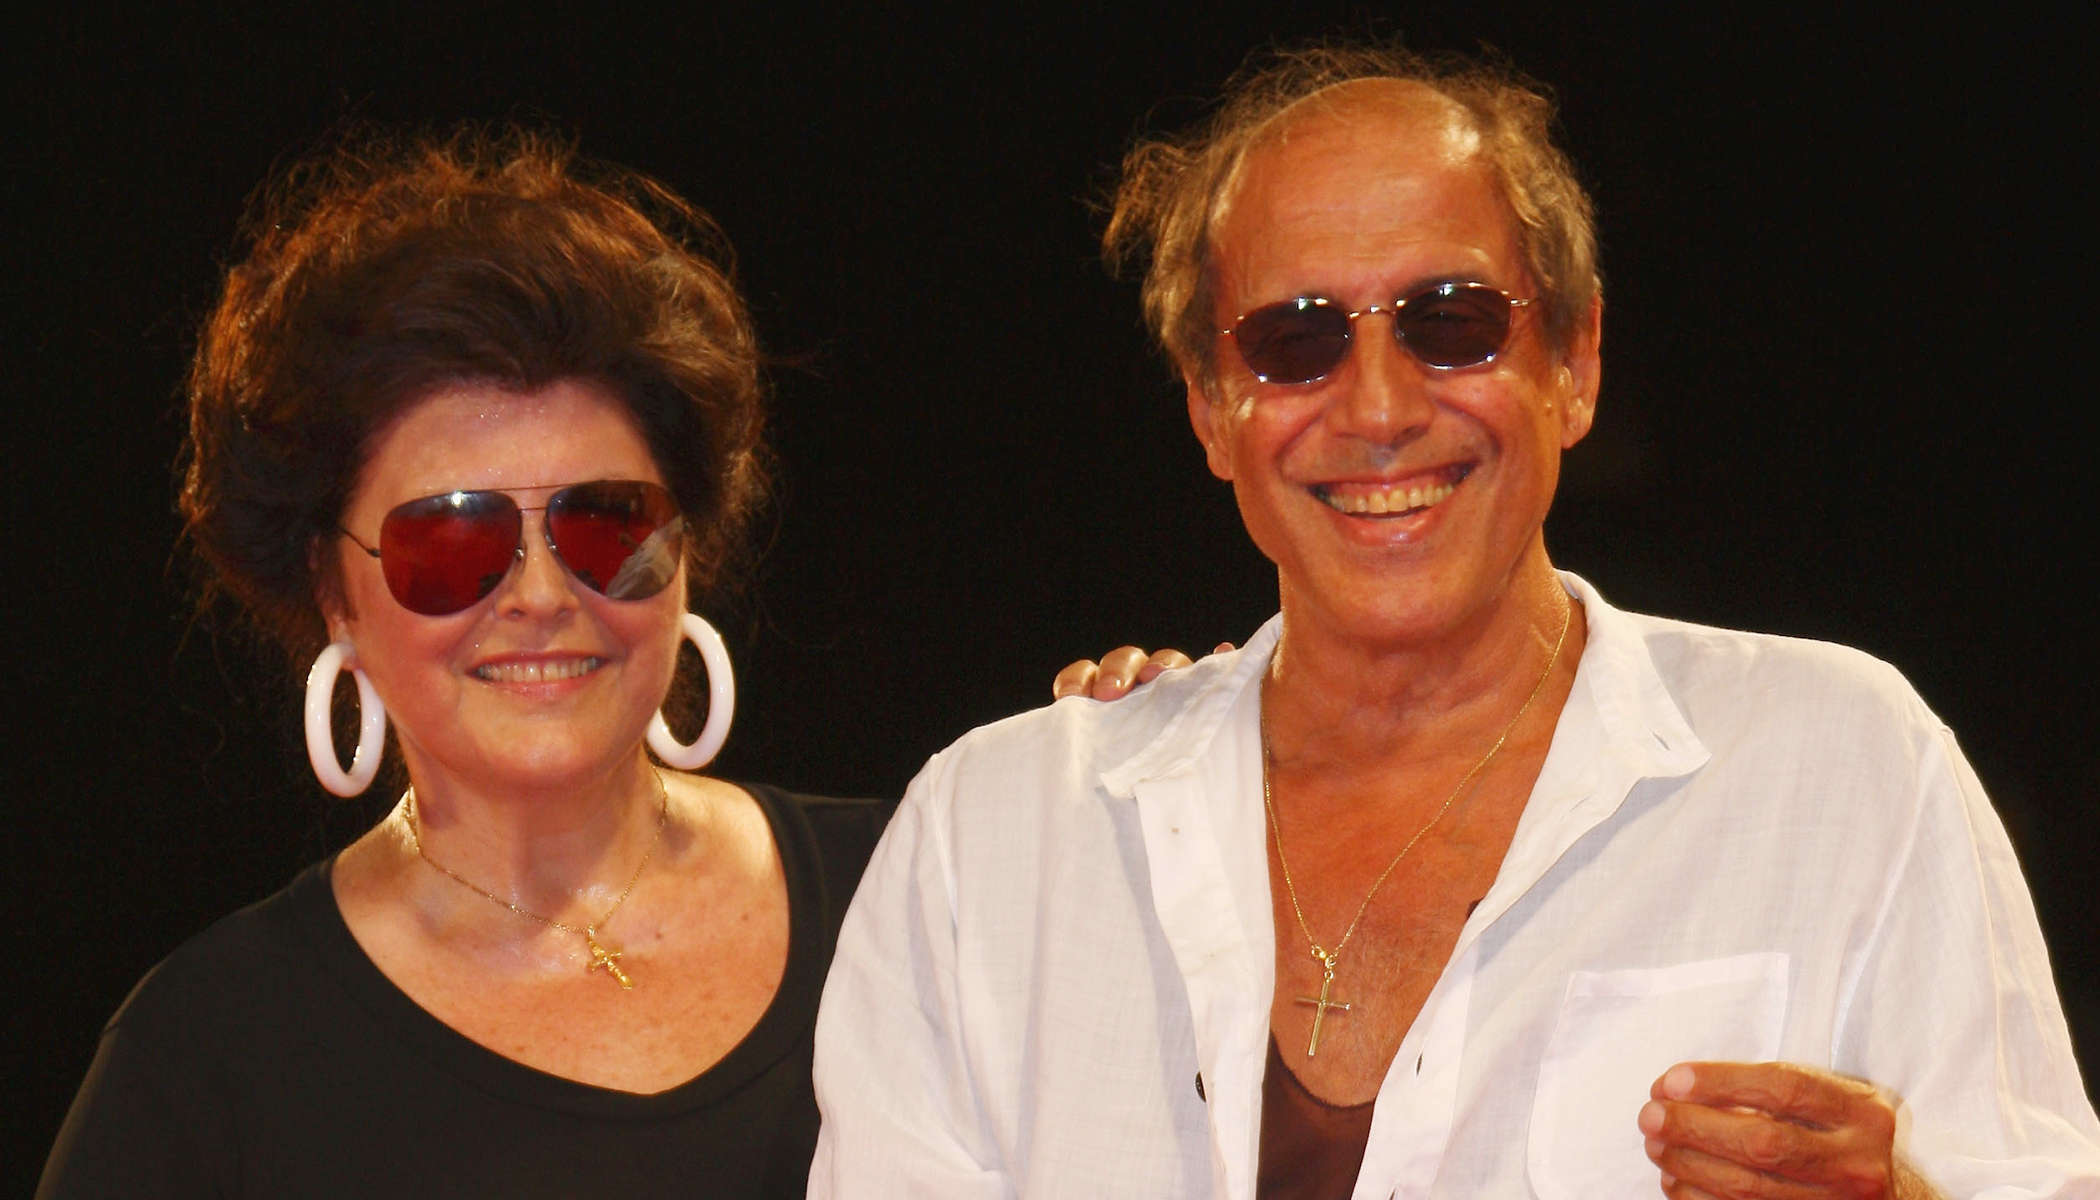 The Love Story of Adriano Celentano and Claudia Mori: Amazing 54 Years and Counting